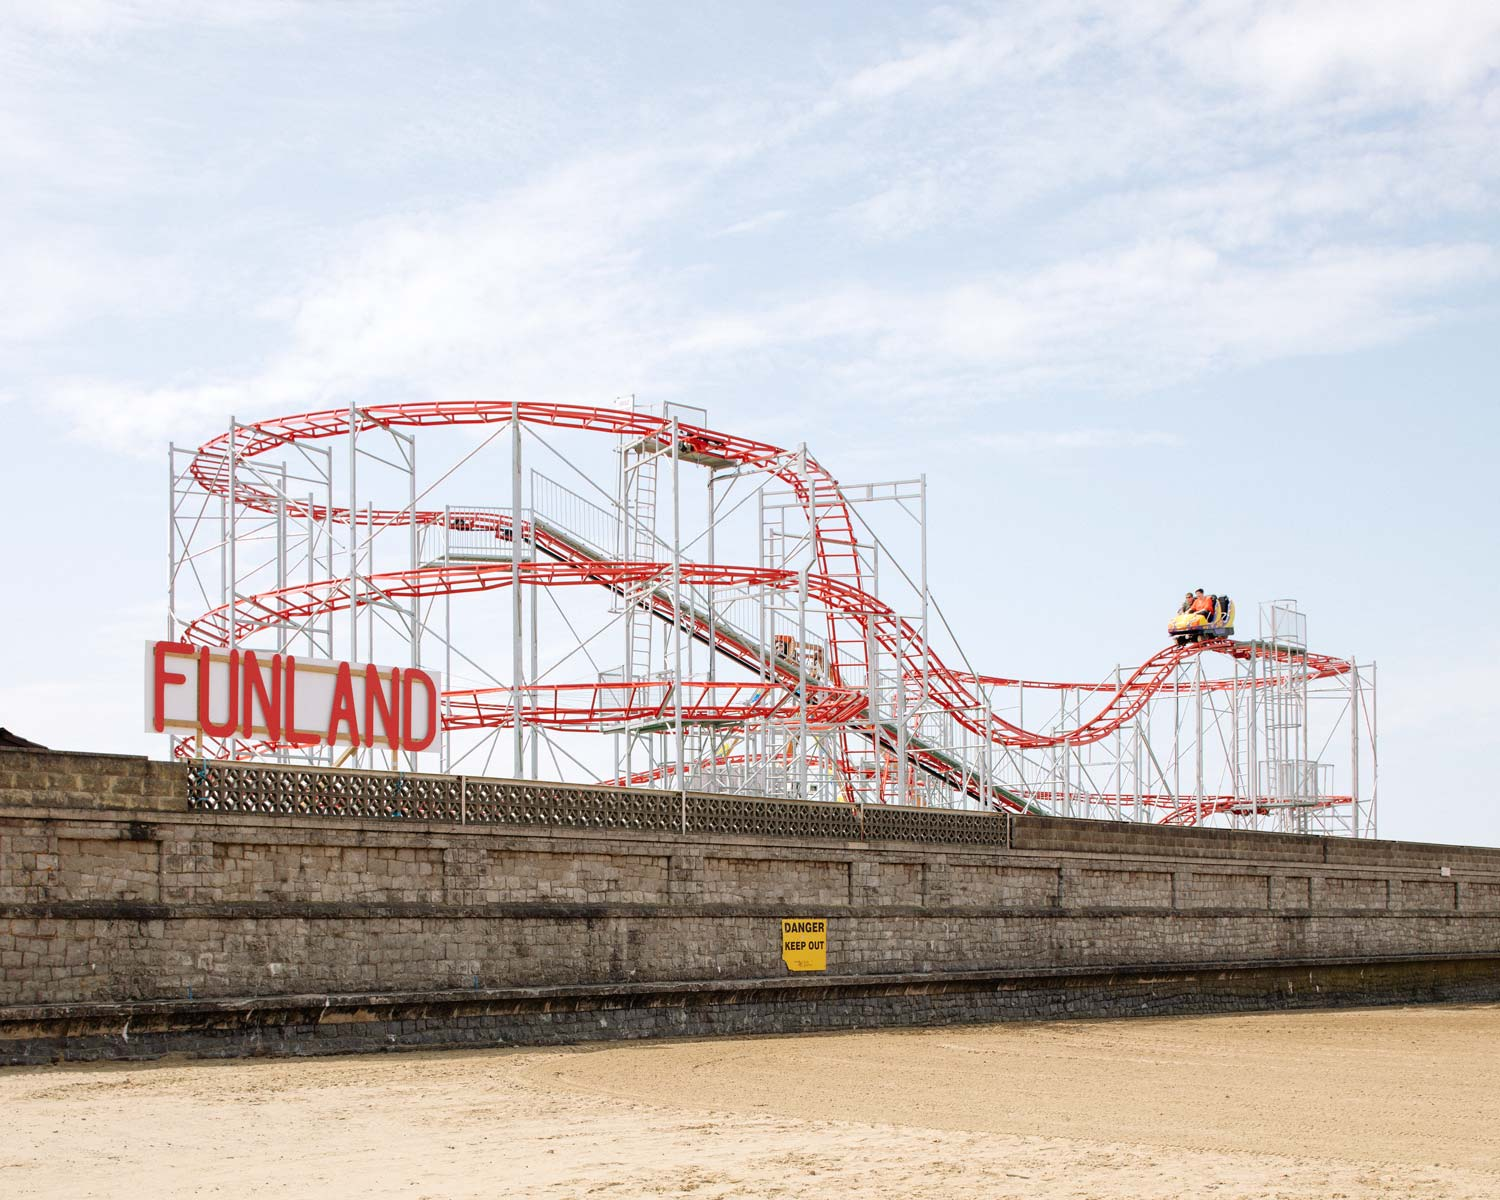 Funland by Rob Ball